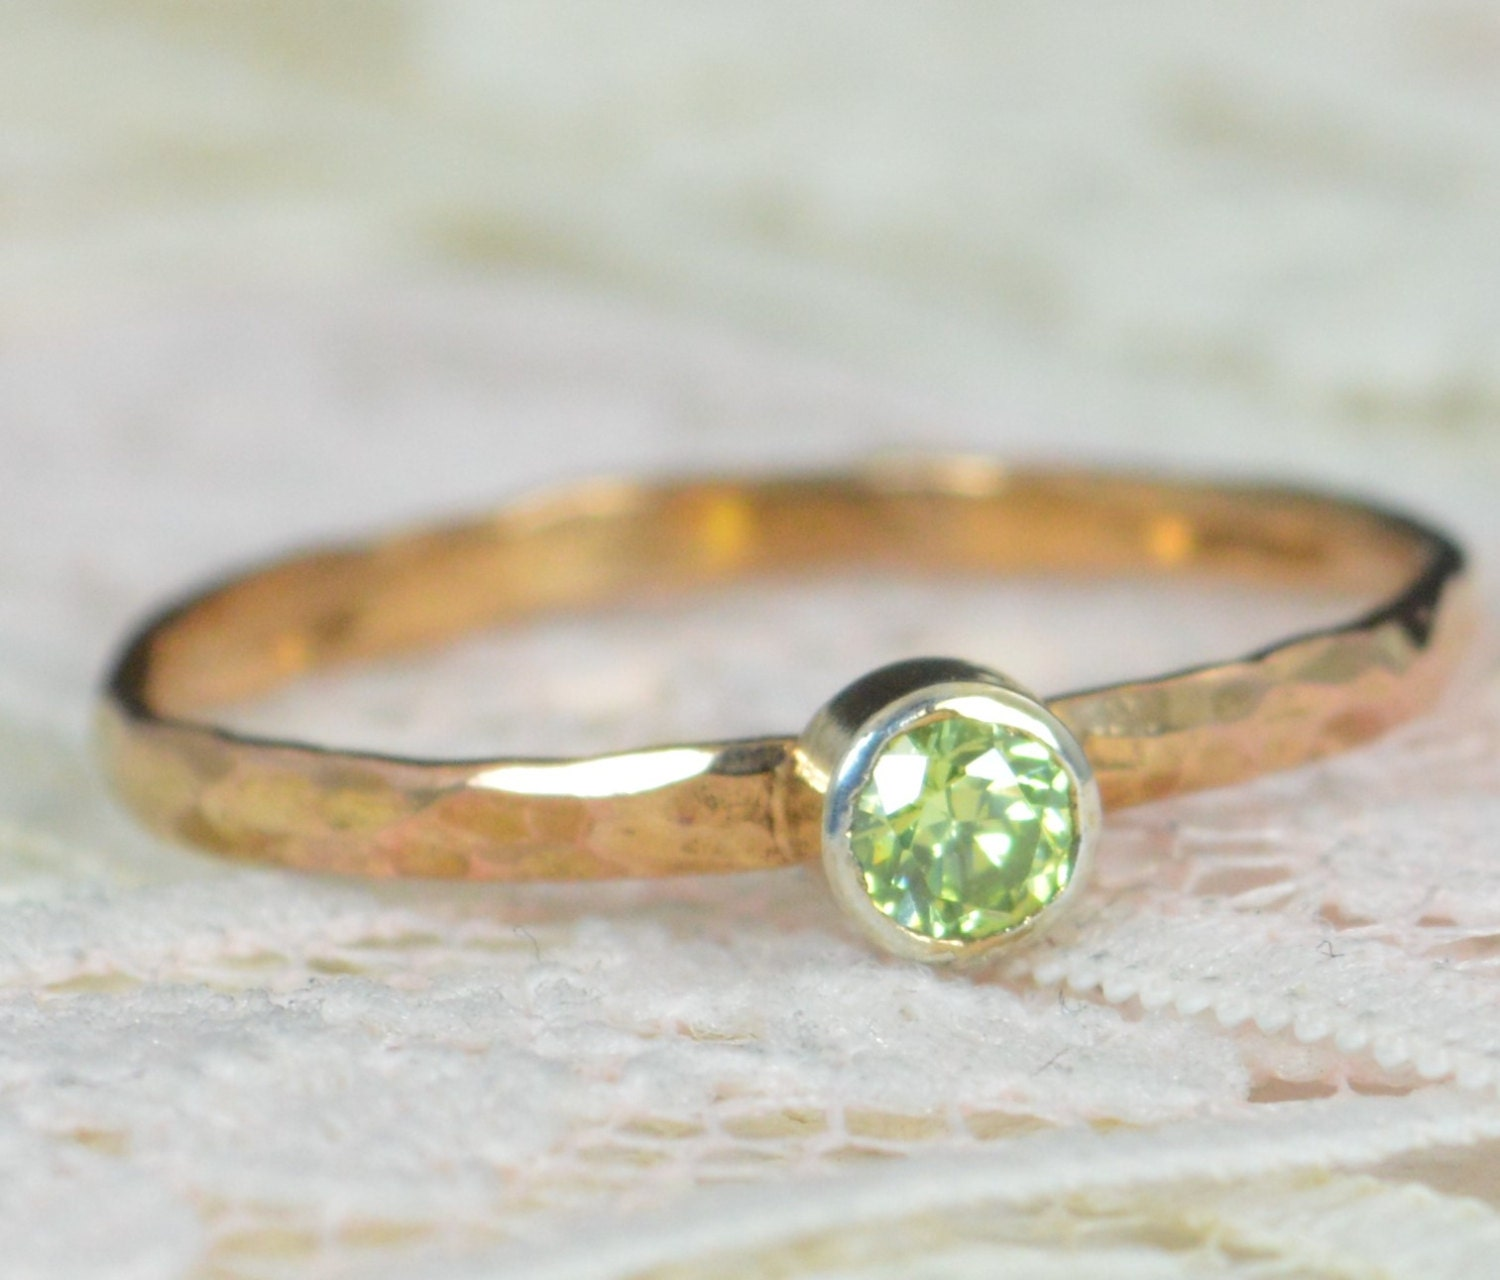 rings picture unique peridot but small things to important in wedding top band observe five